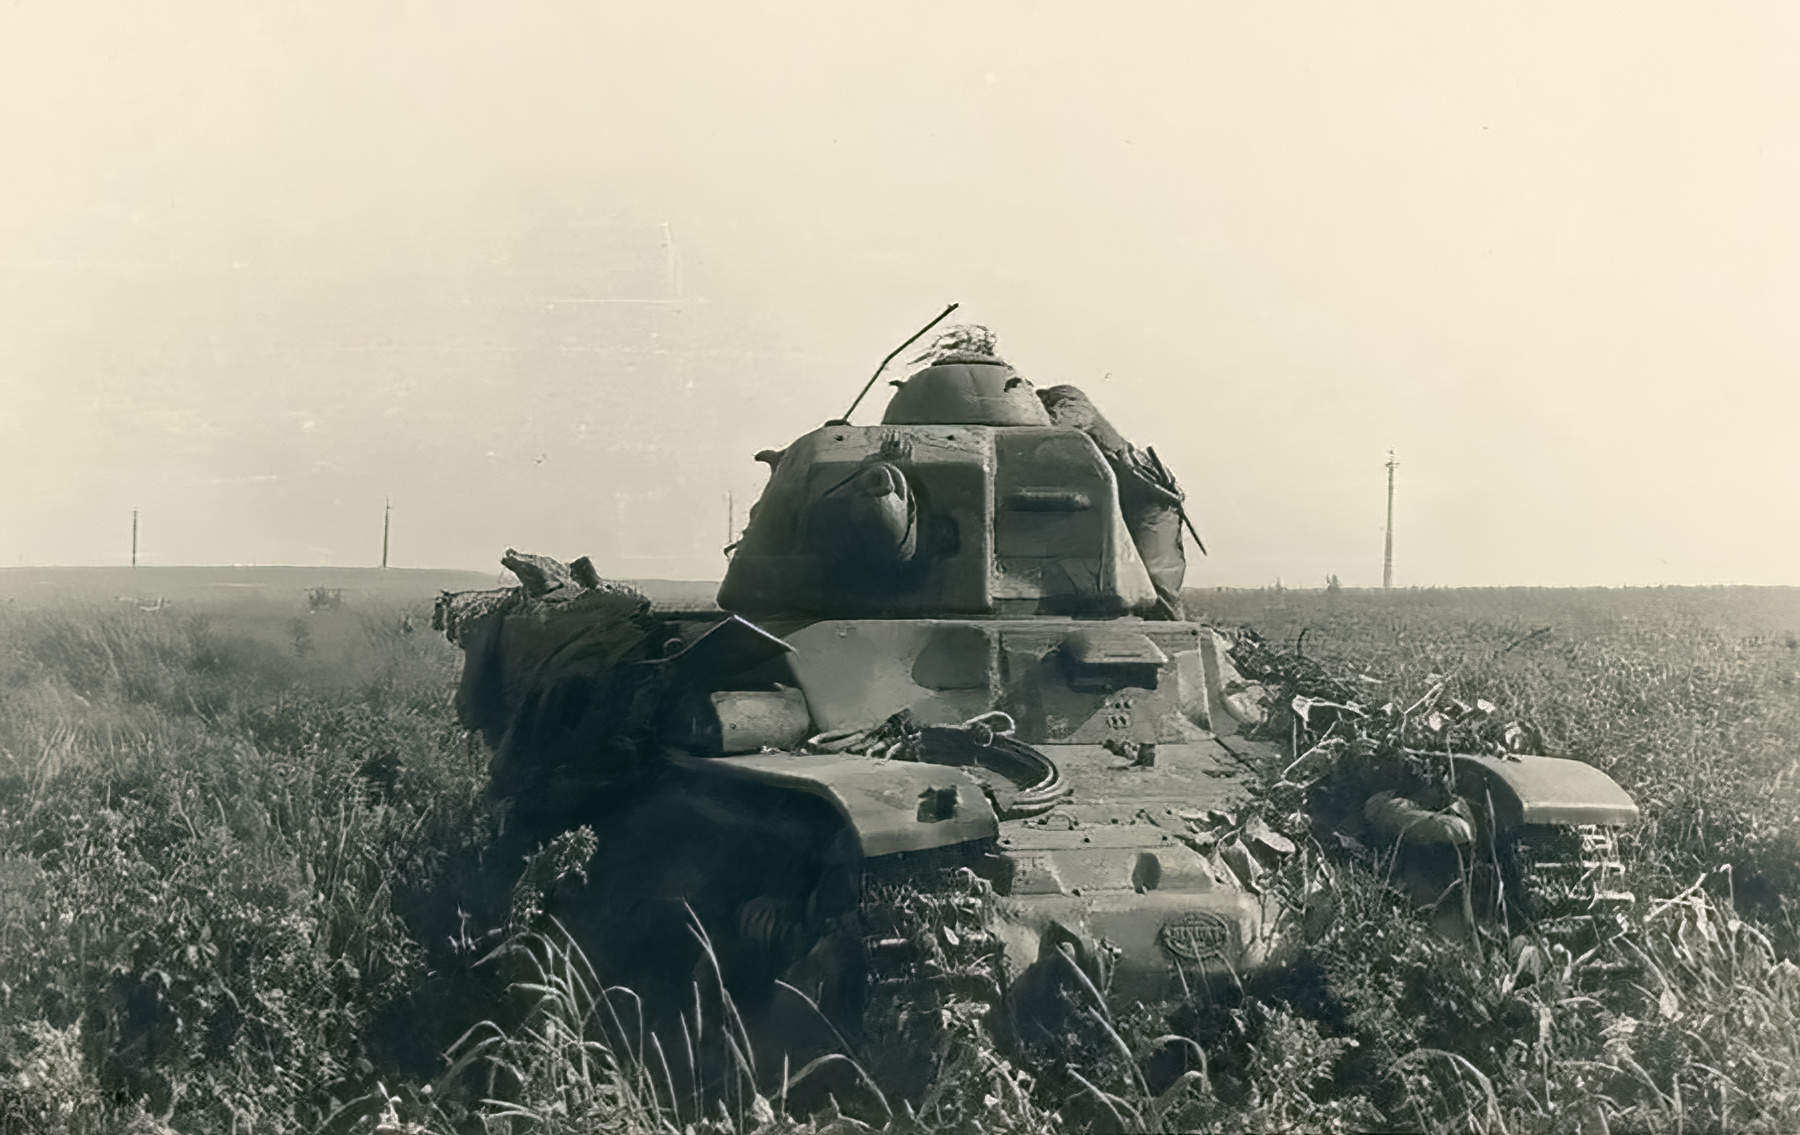 French Army Renault R35 support tank captured battle of France 1940 ebay 02